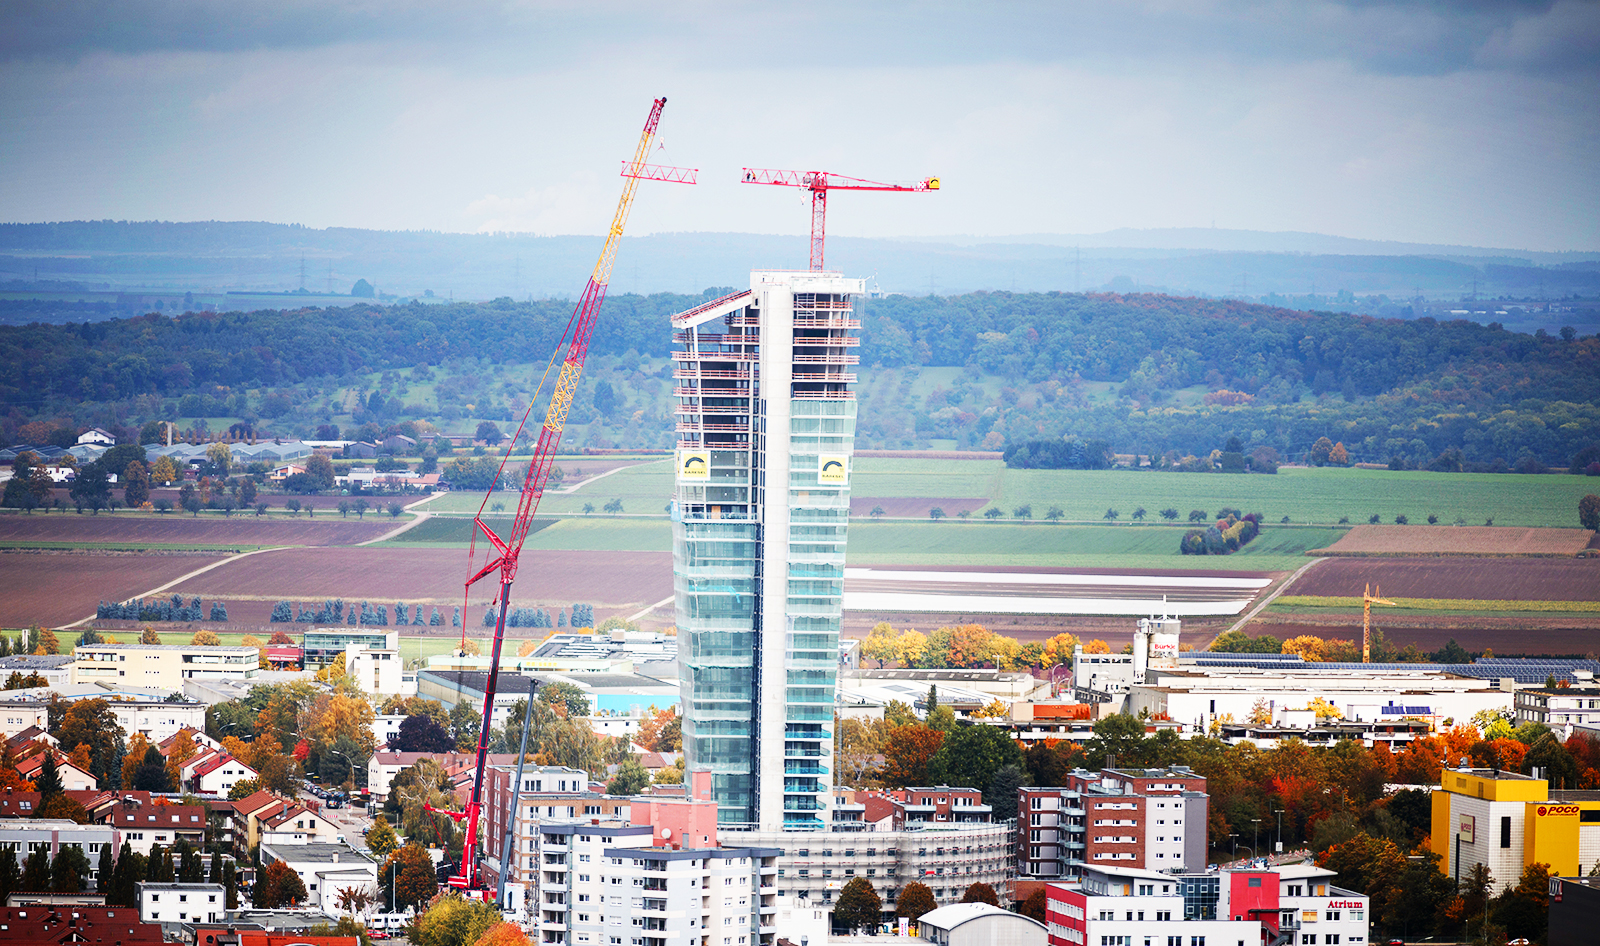 SCHOLPP arbeitet am Gewa-Tower in Stuttgart